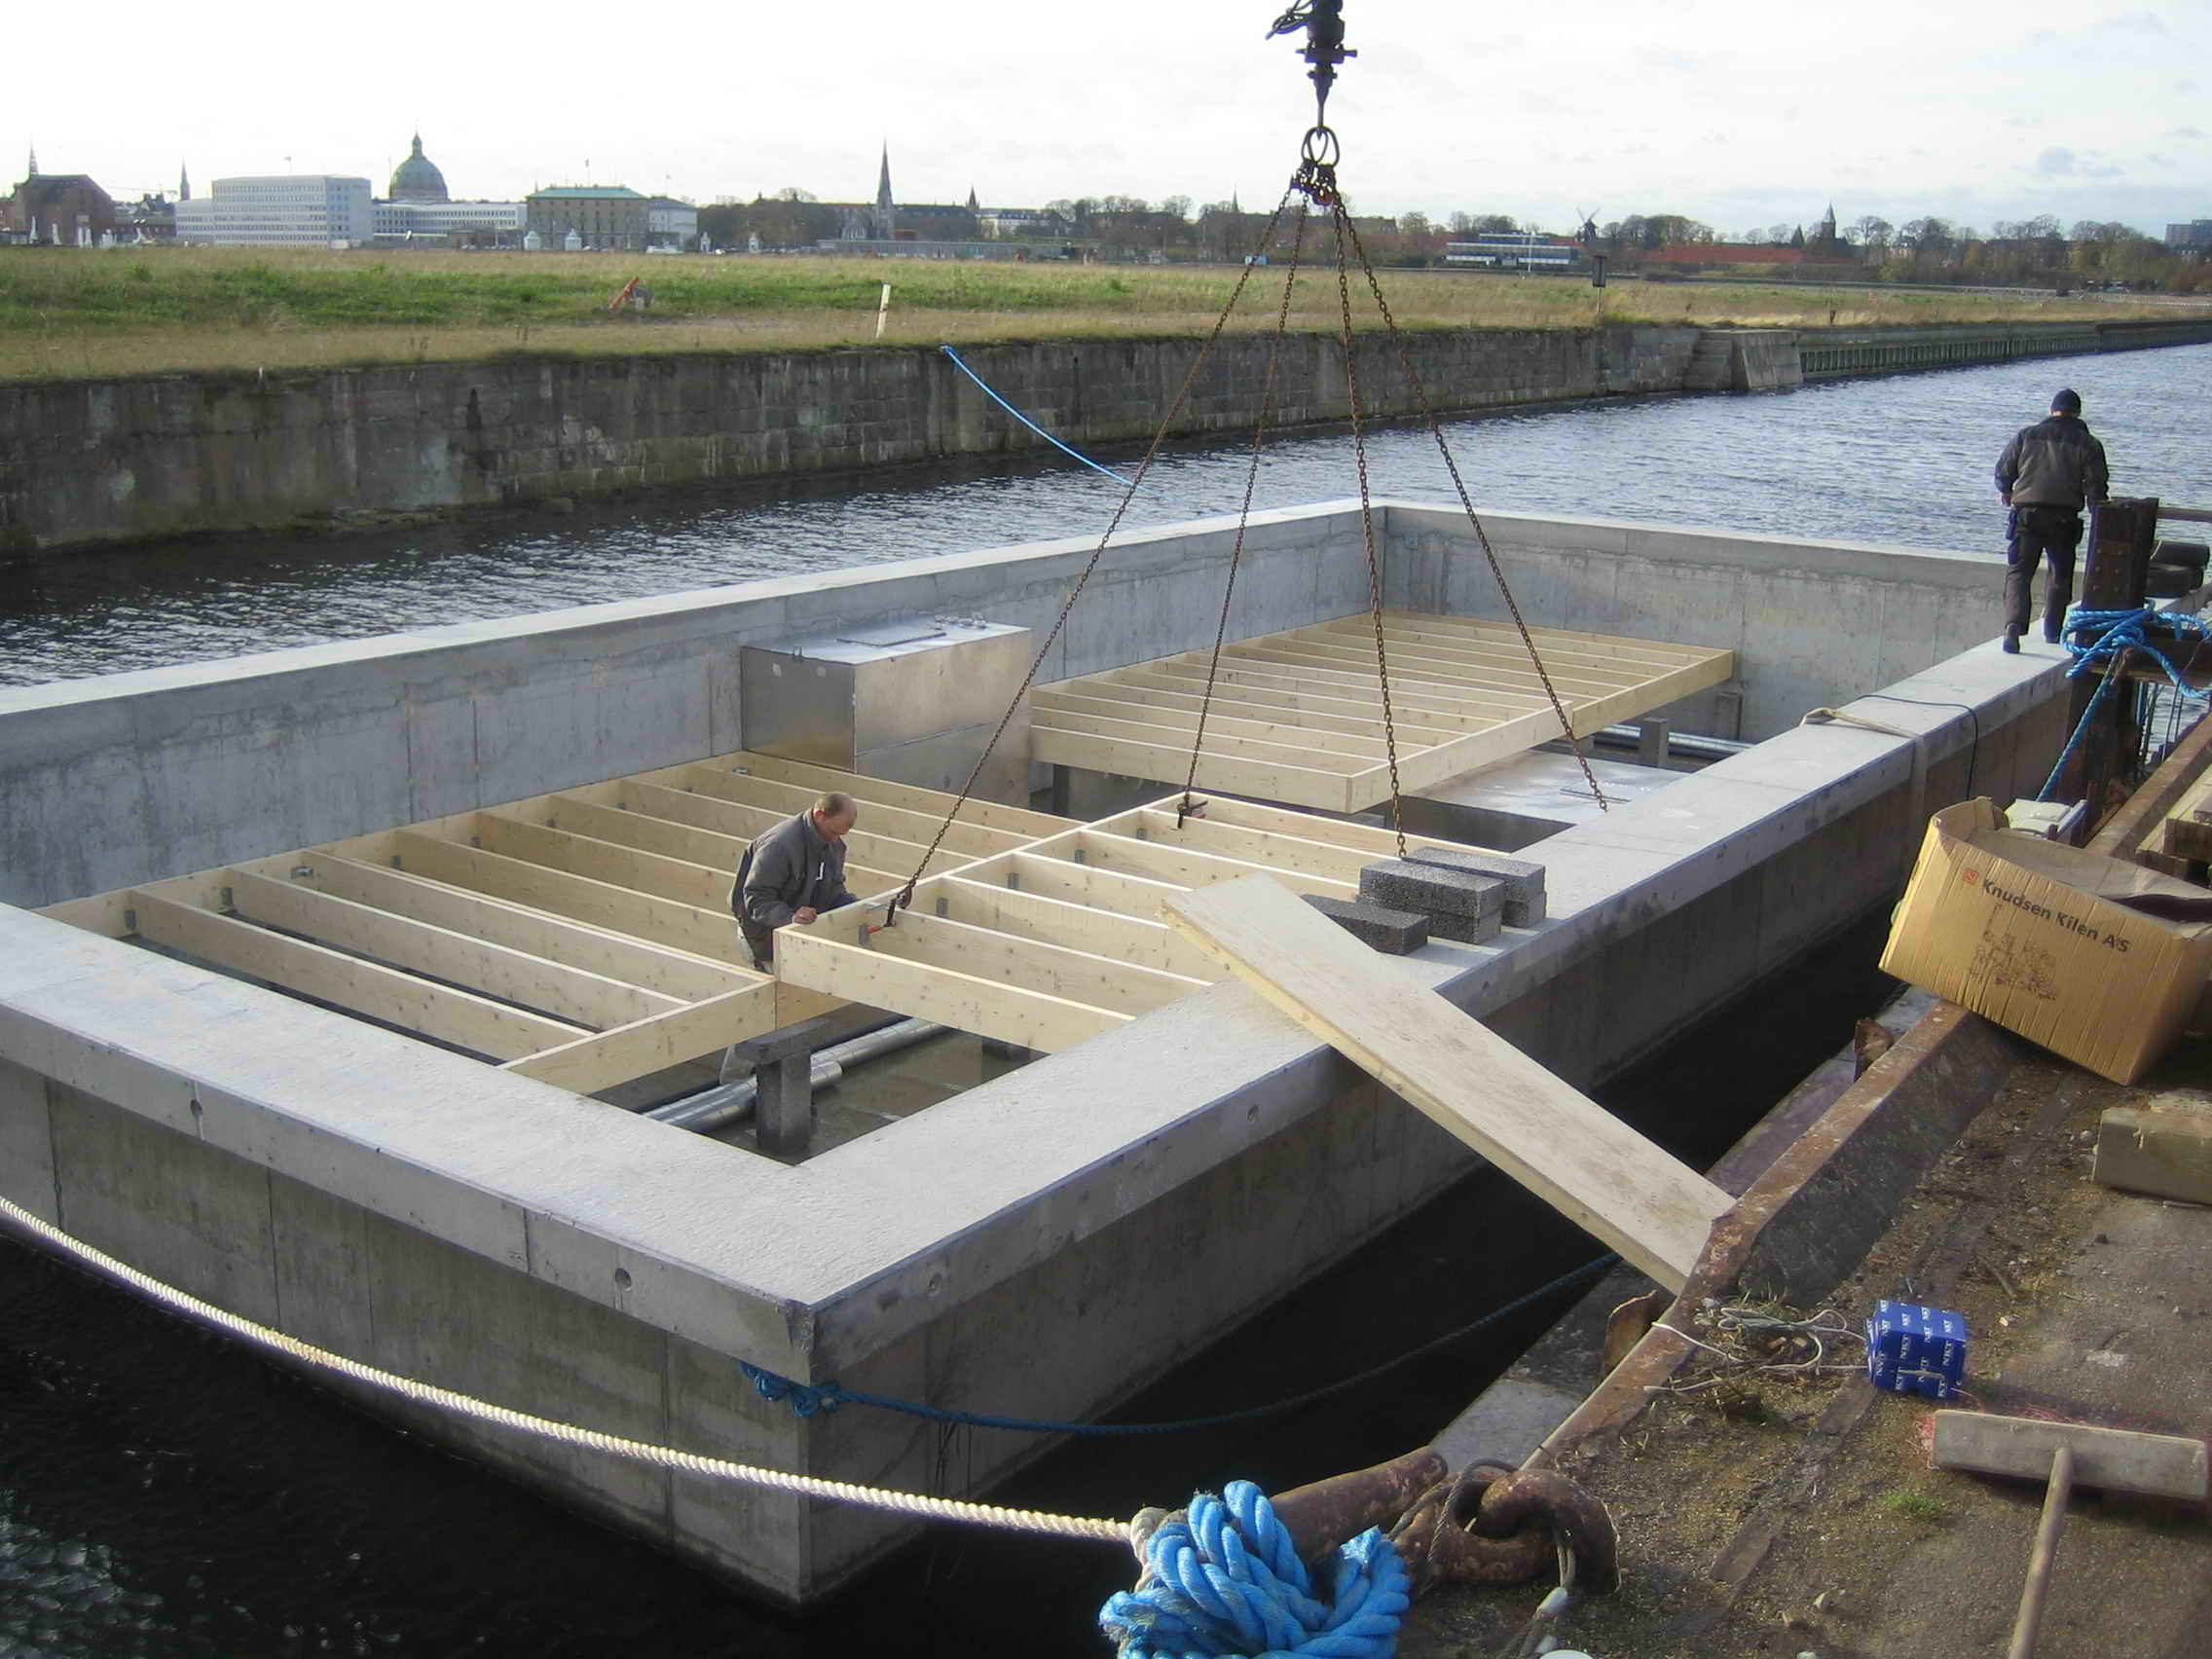 Concrete hull - Dirkmarine / House on Water Ltd. for floating homes